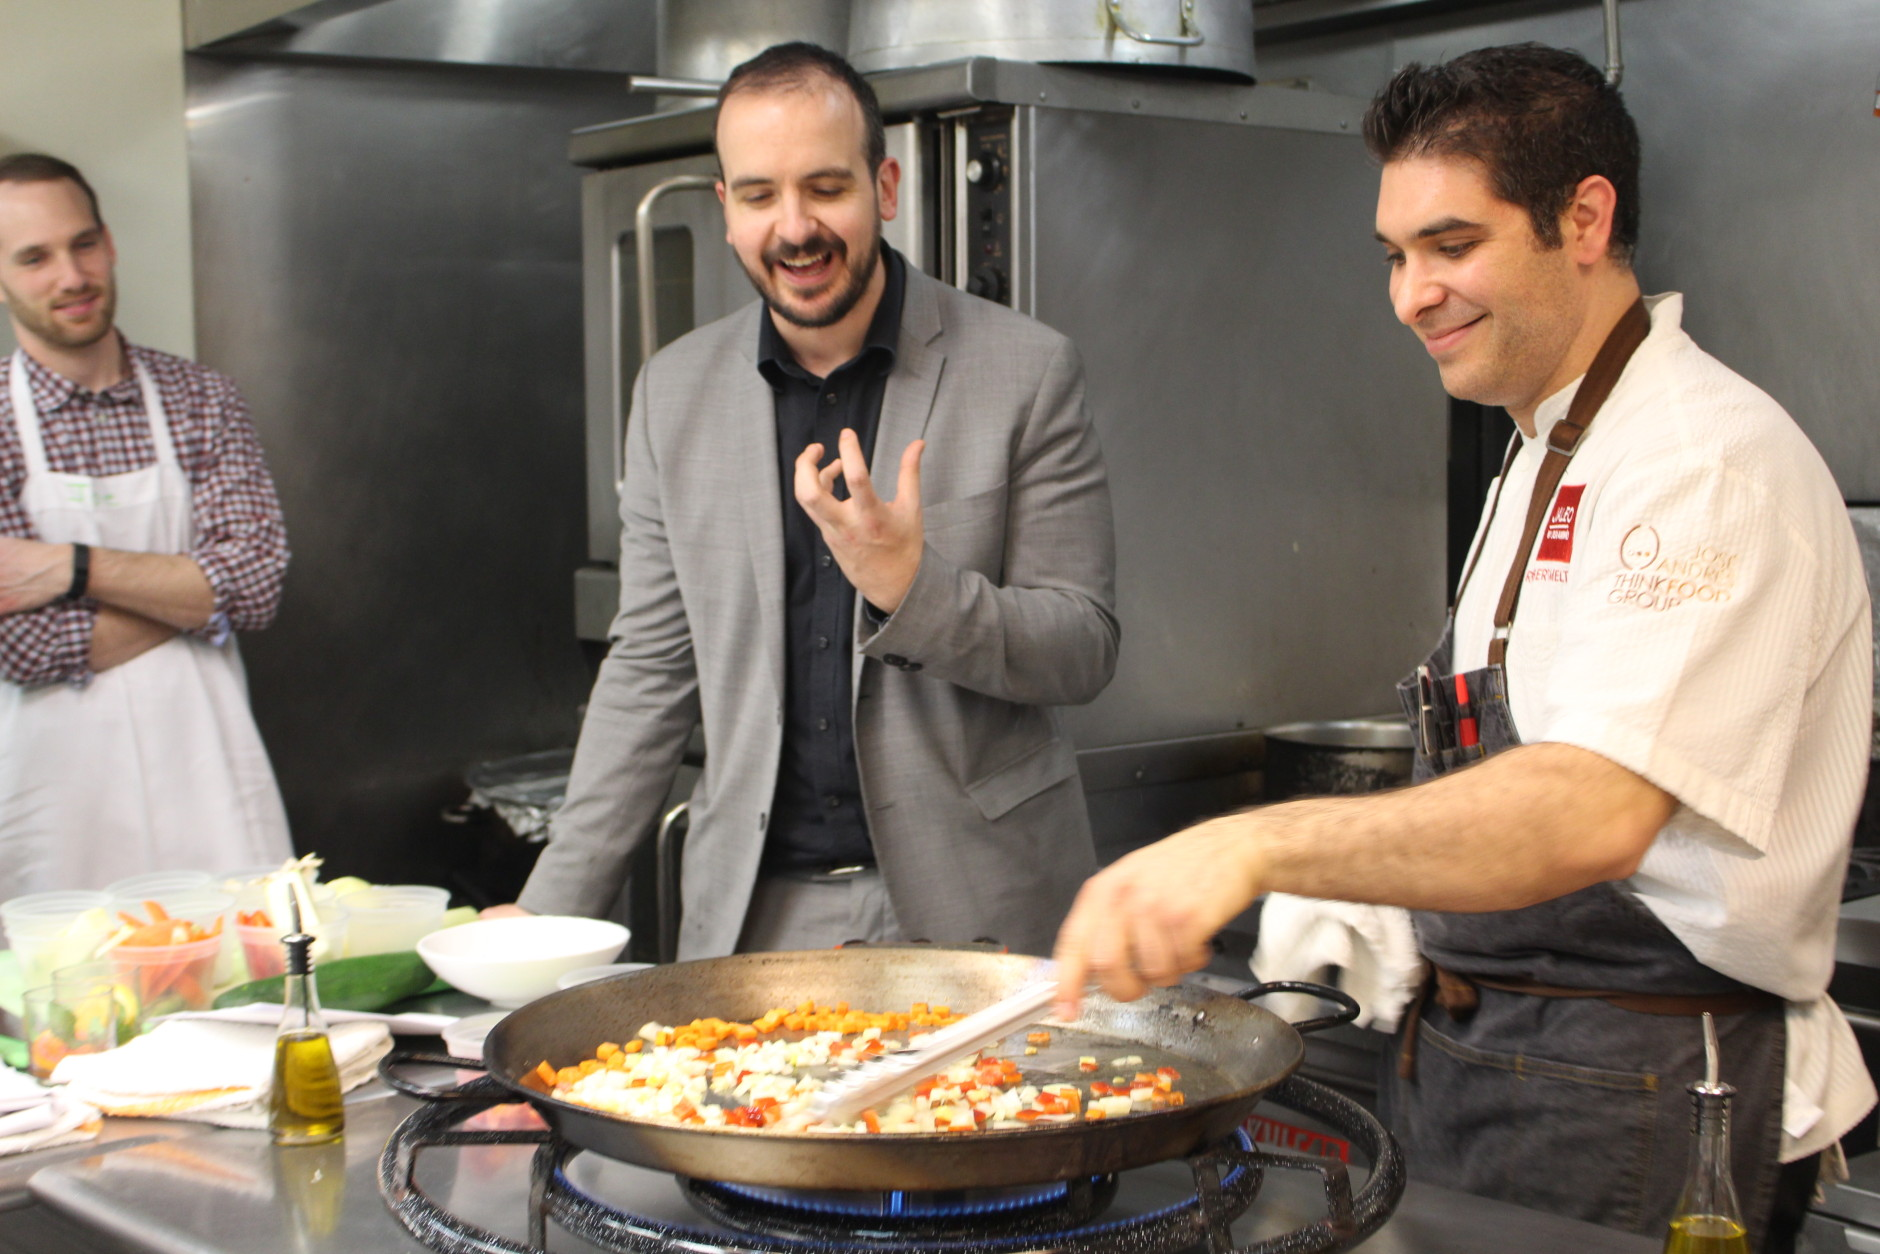 When making paella, add the vegetables with the least water content first, because they will take the longest to cook. Carrots went in first, followed by onions, with zucchini, leeks and mushrooms waiting on the side. (WTOP/Dana Gooley)